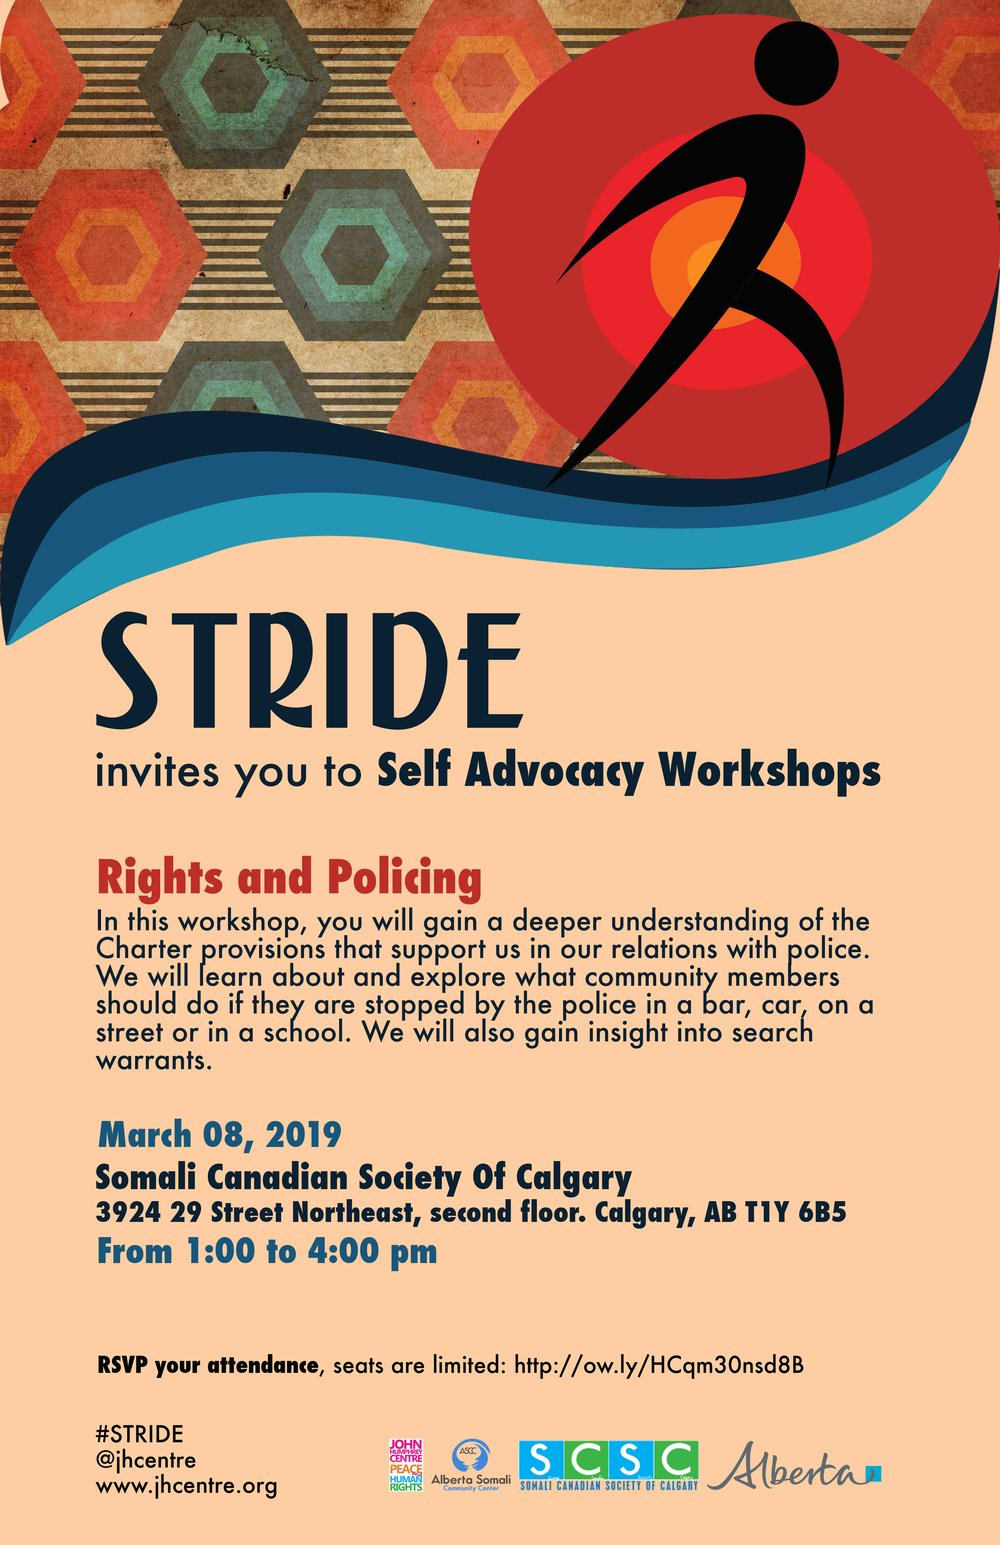 Rights&Policing-Calgary-Stride.jpg